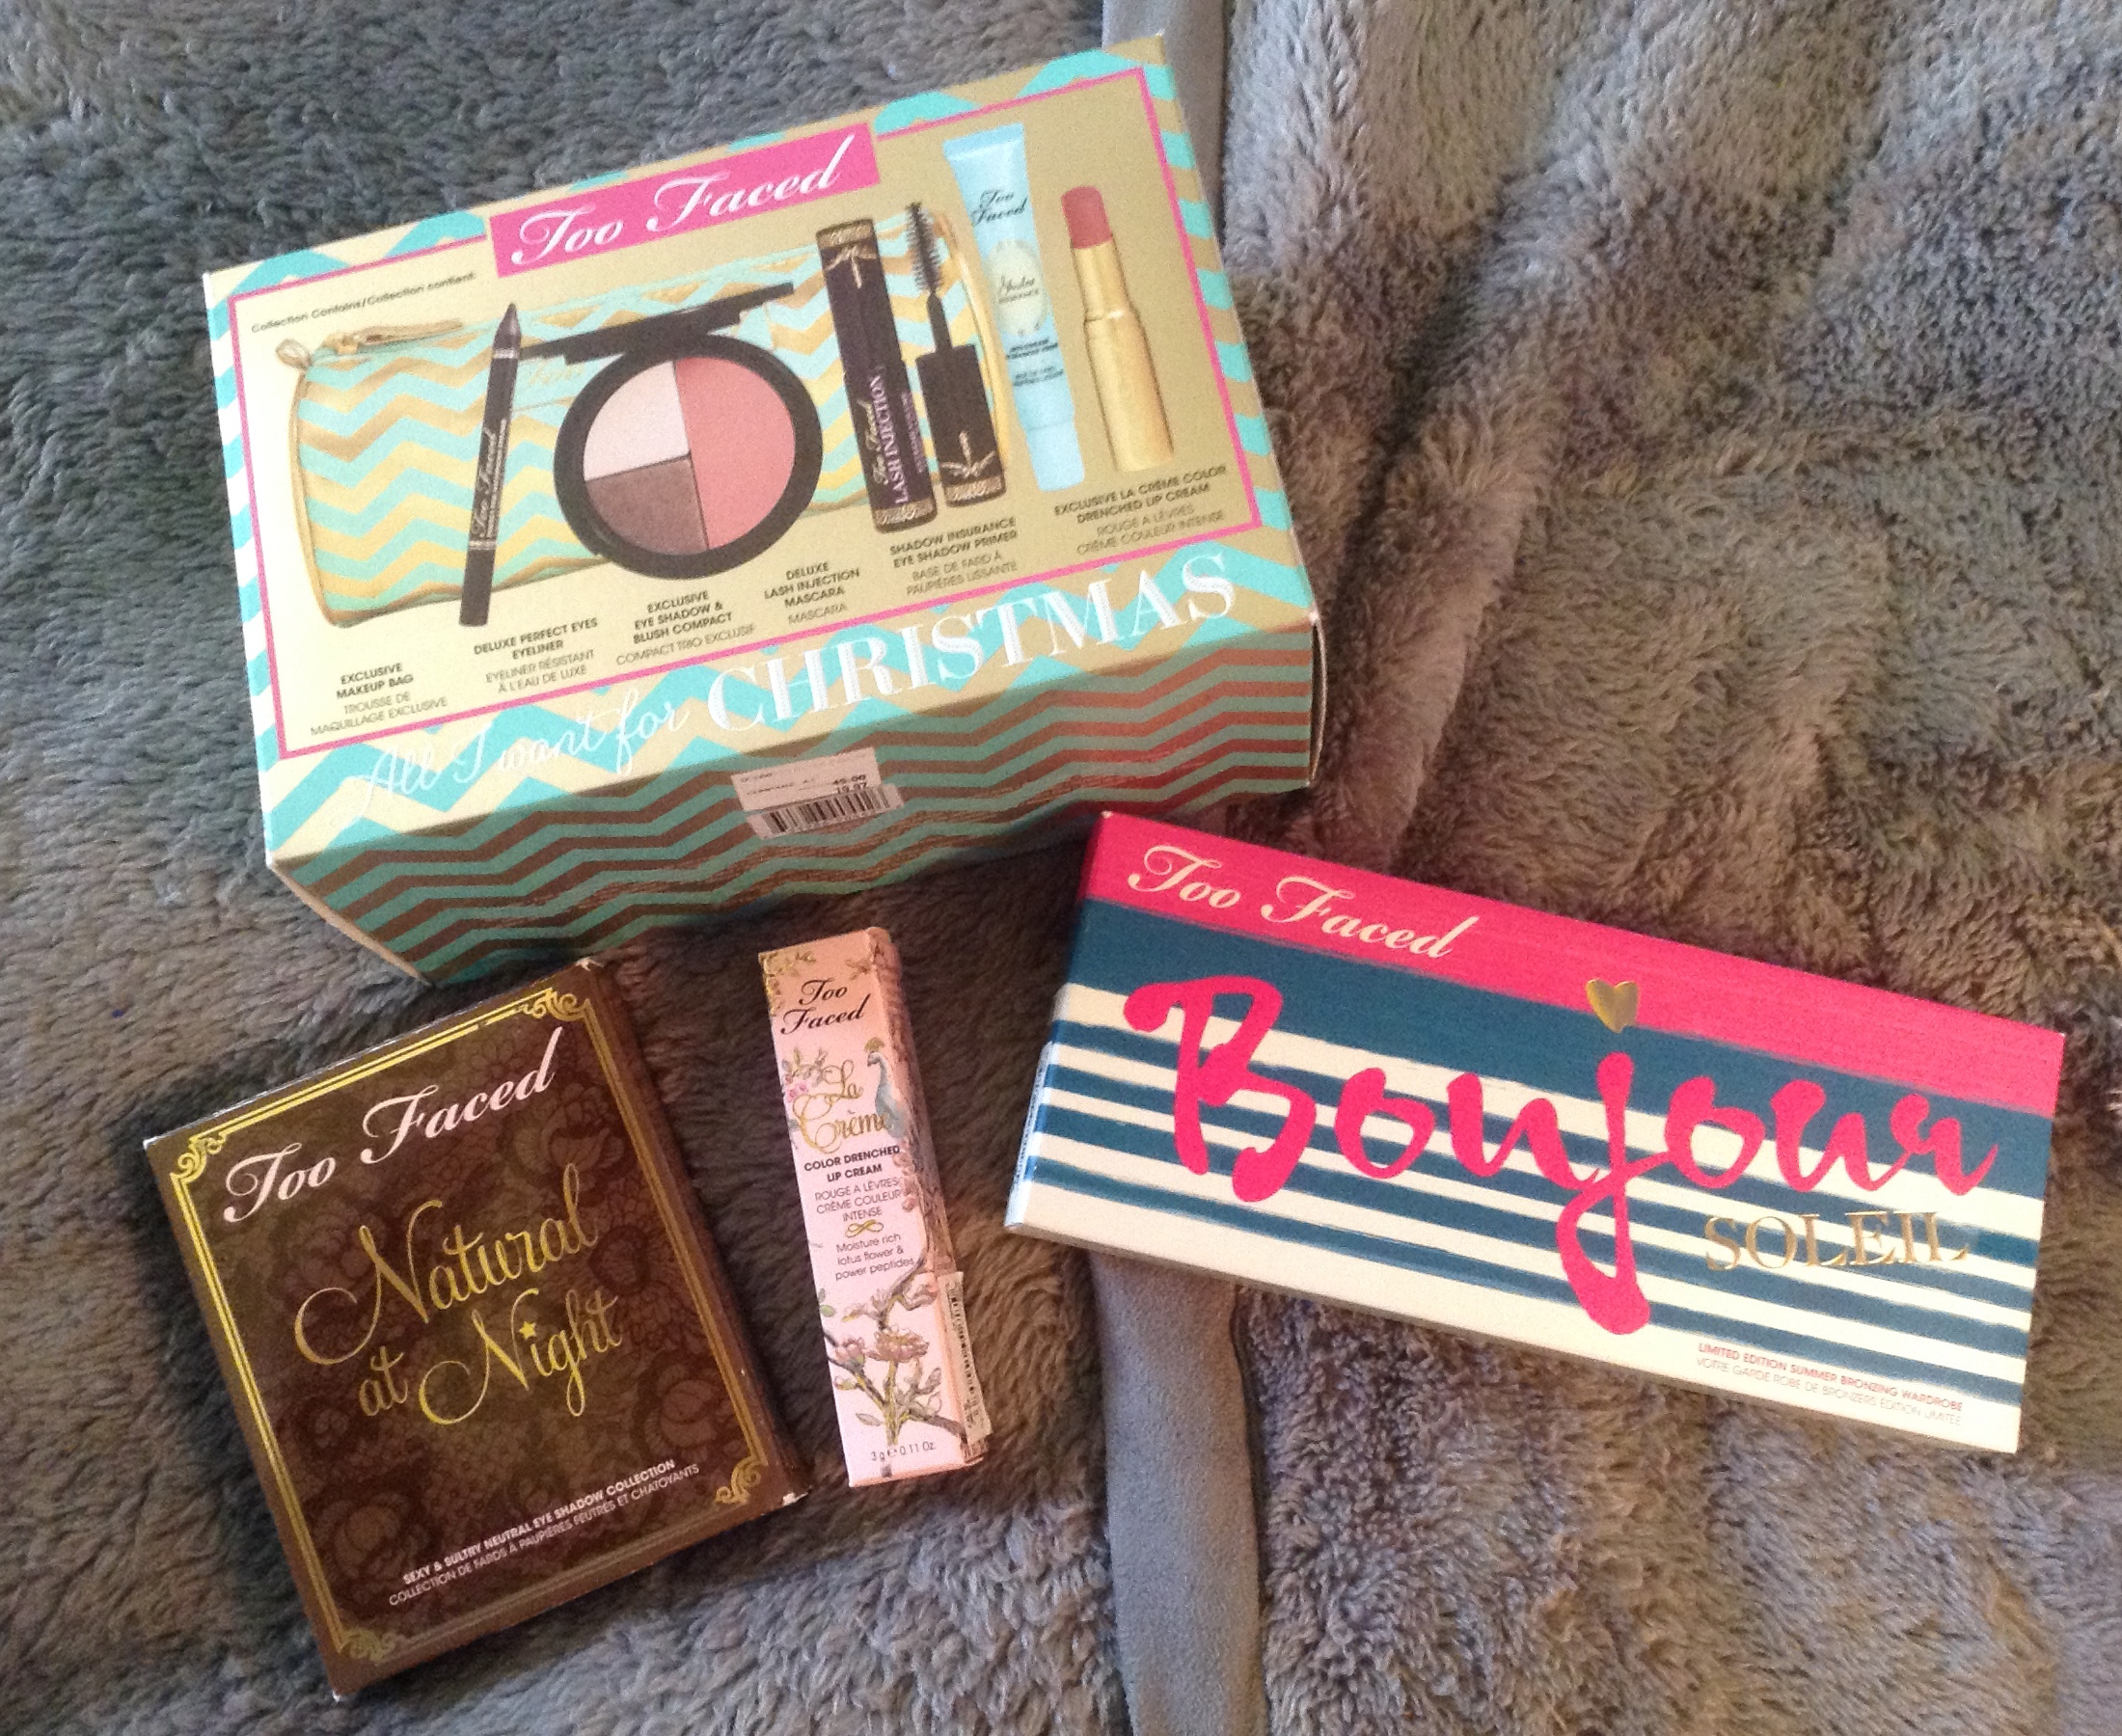 e8d95eee7c7 Everything that i got at Nordstrom Rack yesterday were Too Faced products,  and let me tell you, the deals were great! These are the products I decided  to ...